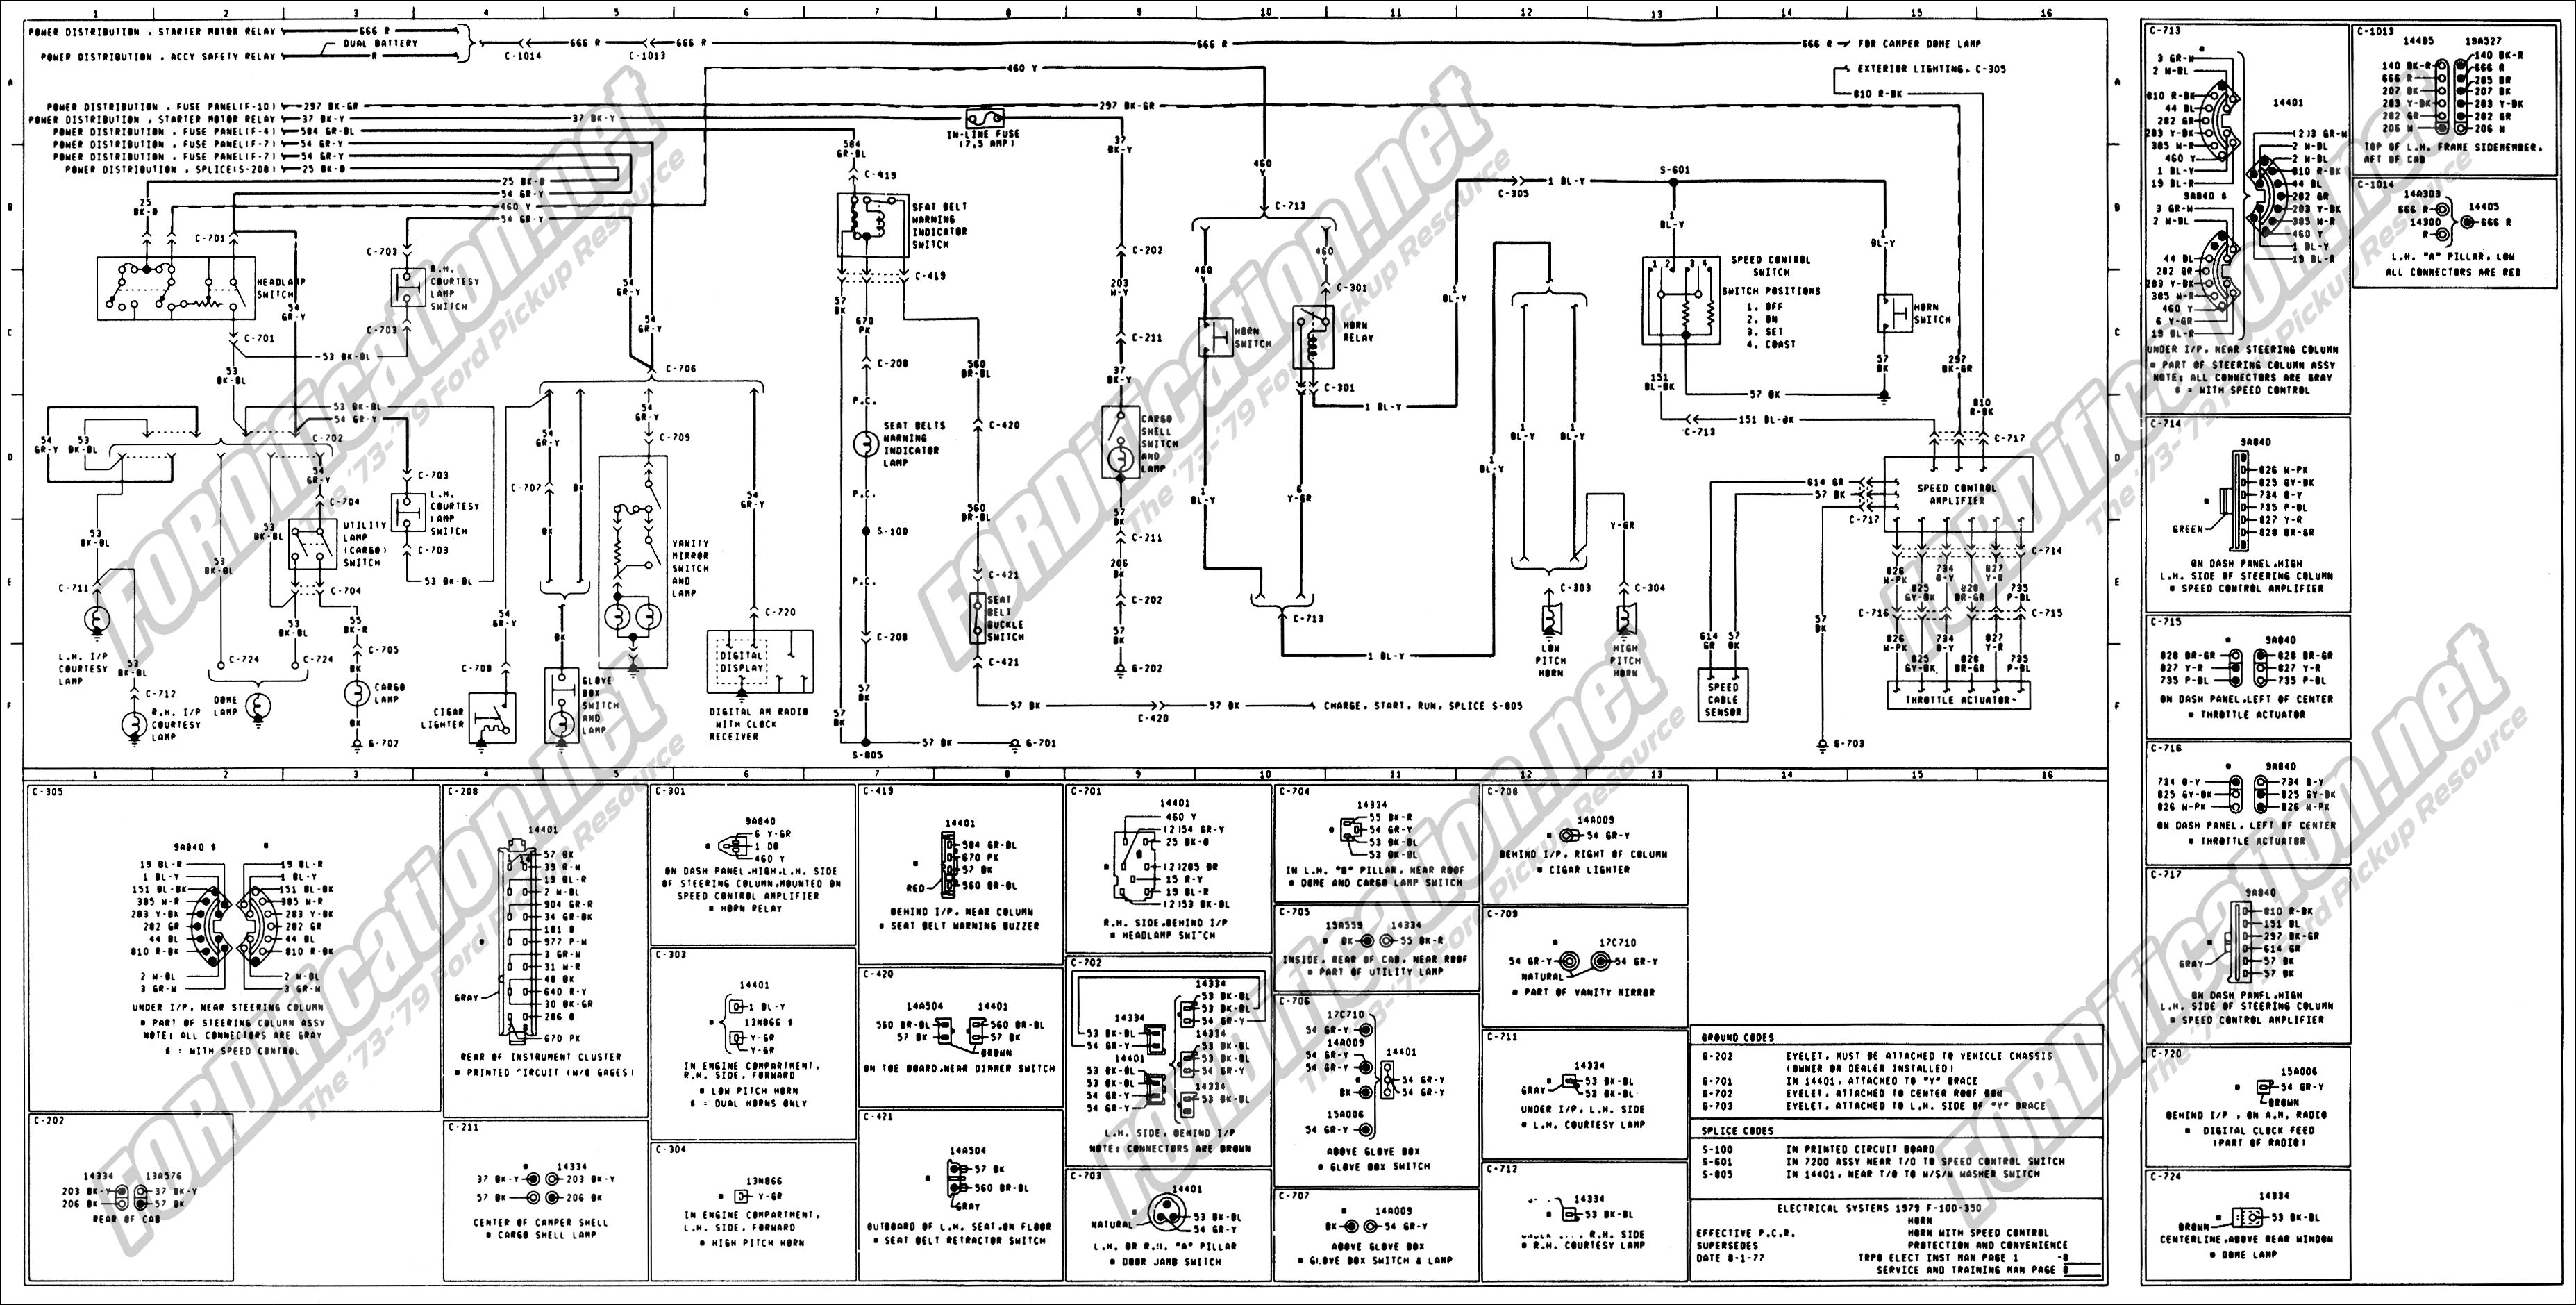 wiring_79master_8of9 1973 1979 ford truck wiring diagrams & schematics fordification net 1988 ford f250 wiring diagram at suagrazia.org